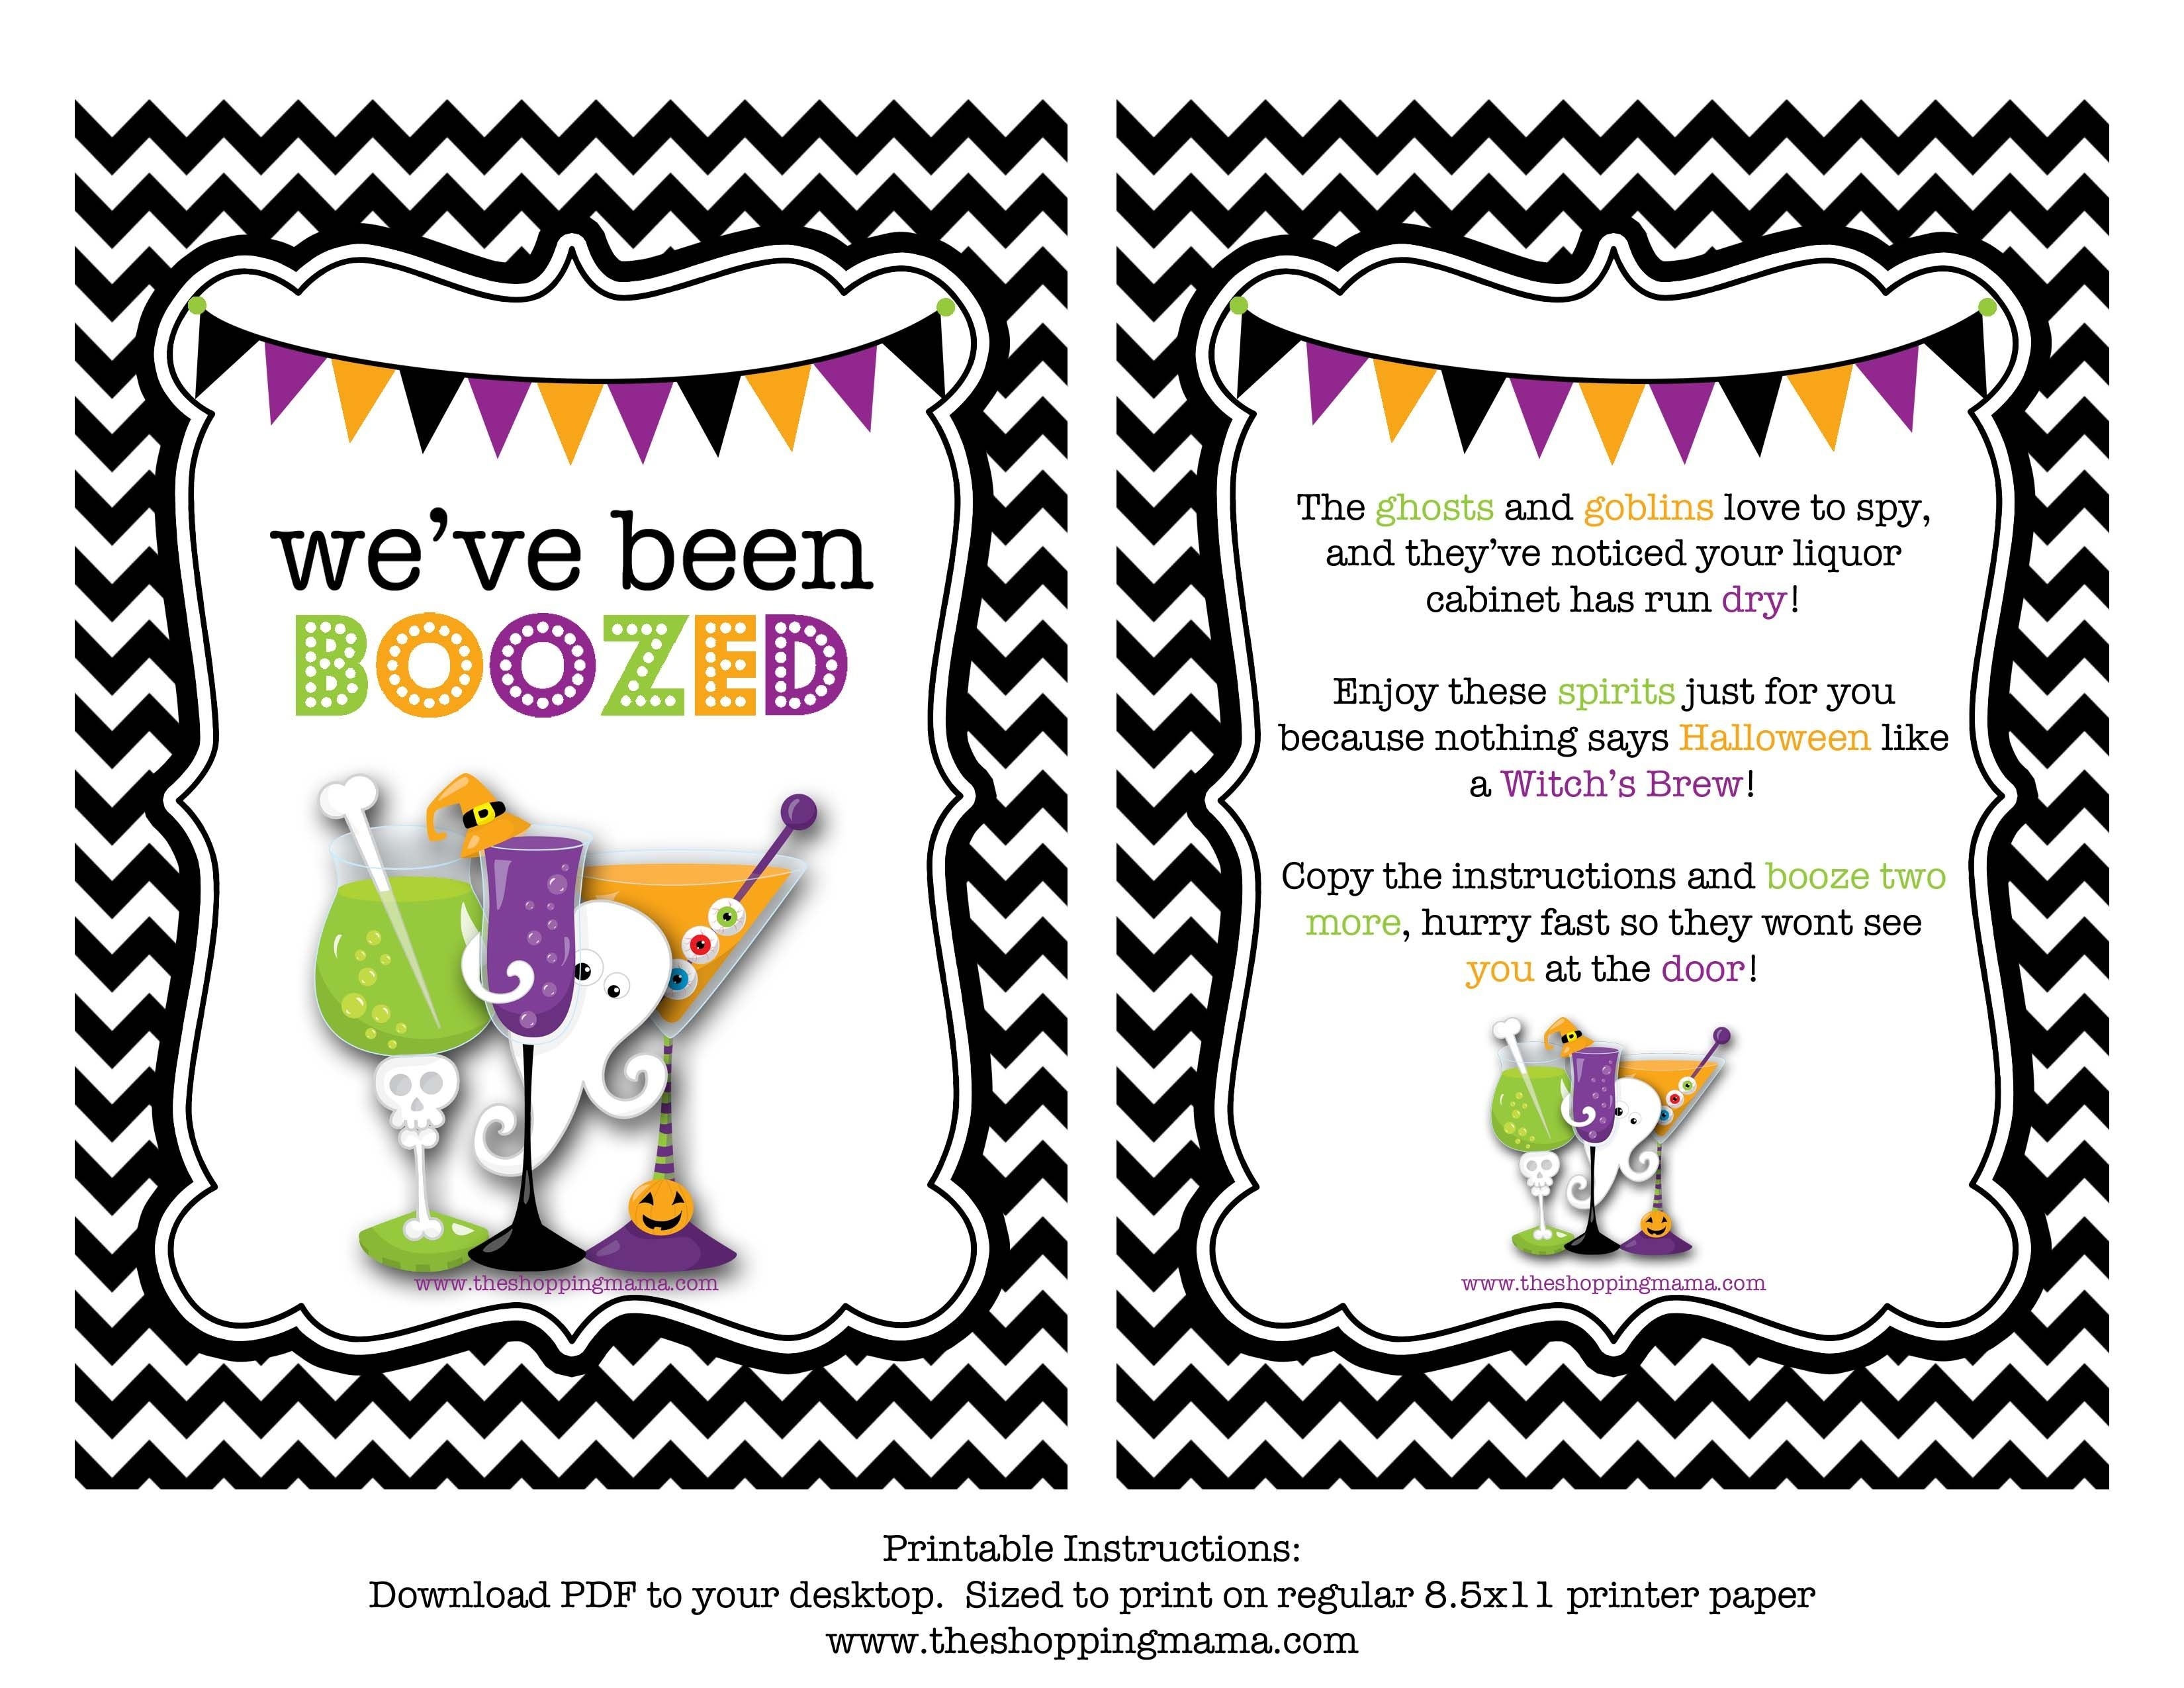 We've Been Boozed! {Free Printable} | Miscellaneous | Halloween - You Ve Been Boozed Free Printable